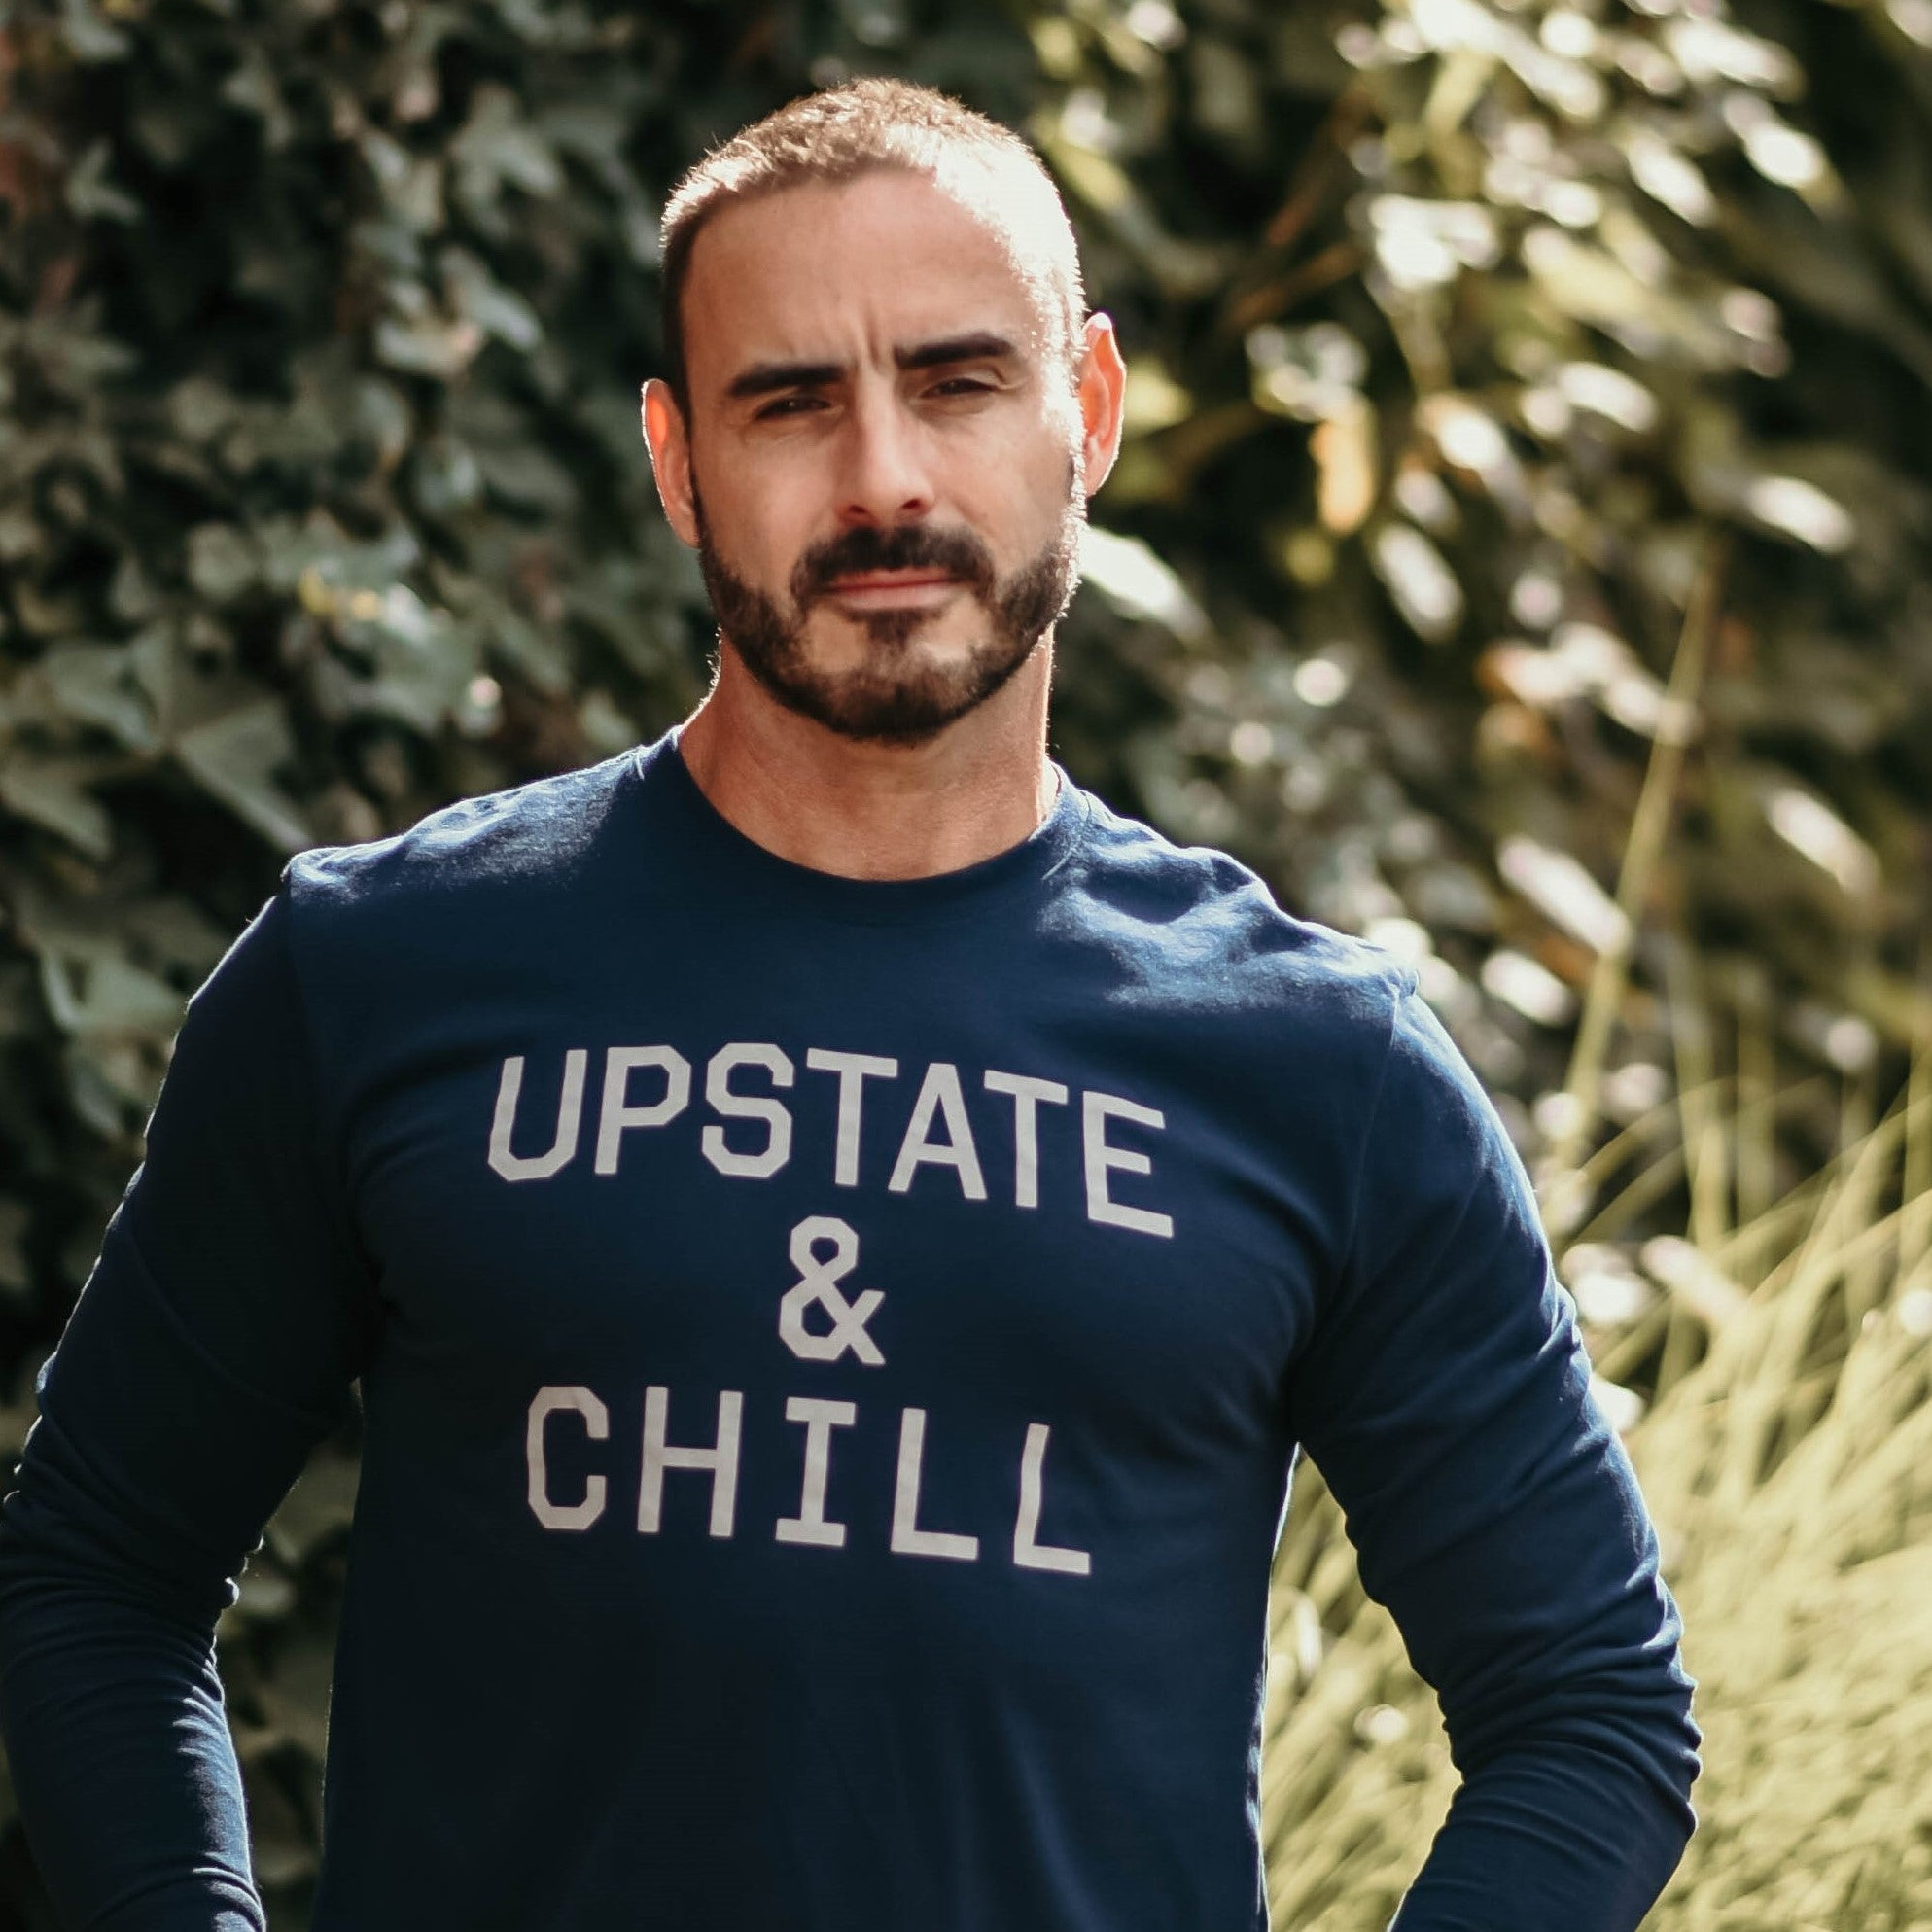 Upstate & Chill - Long Sleeve T